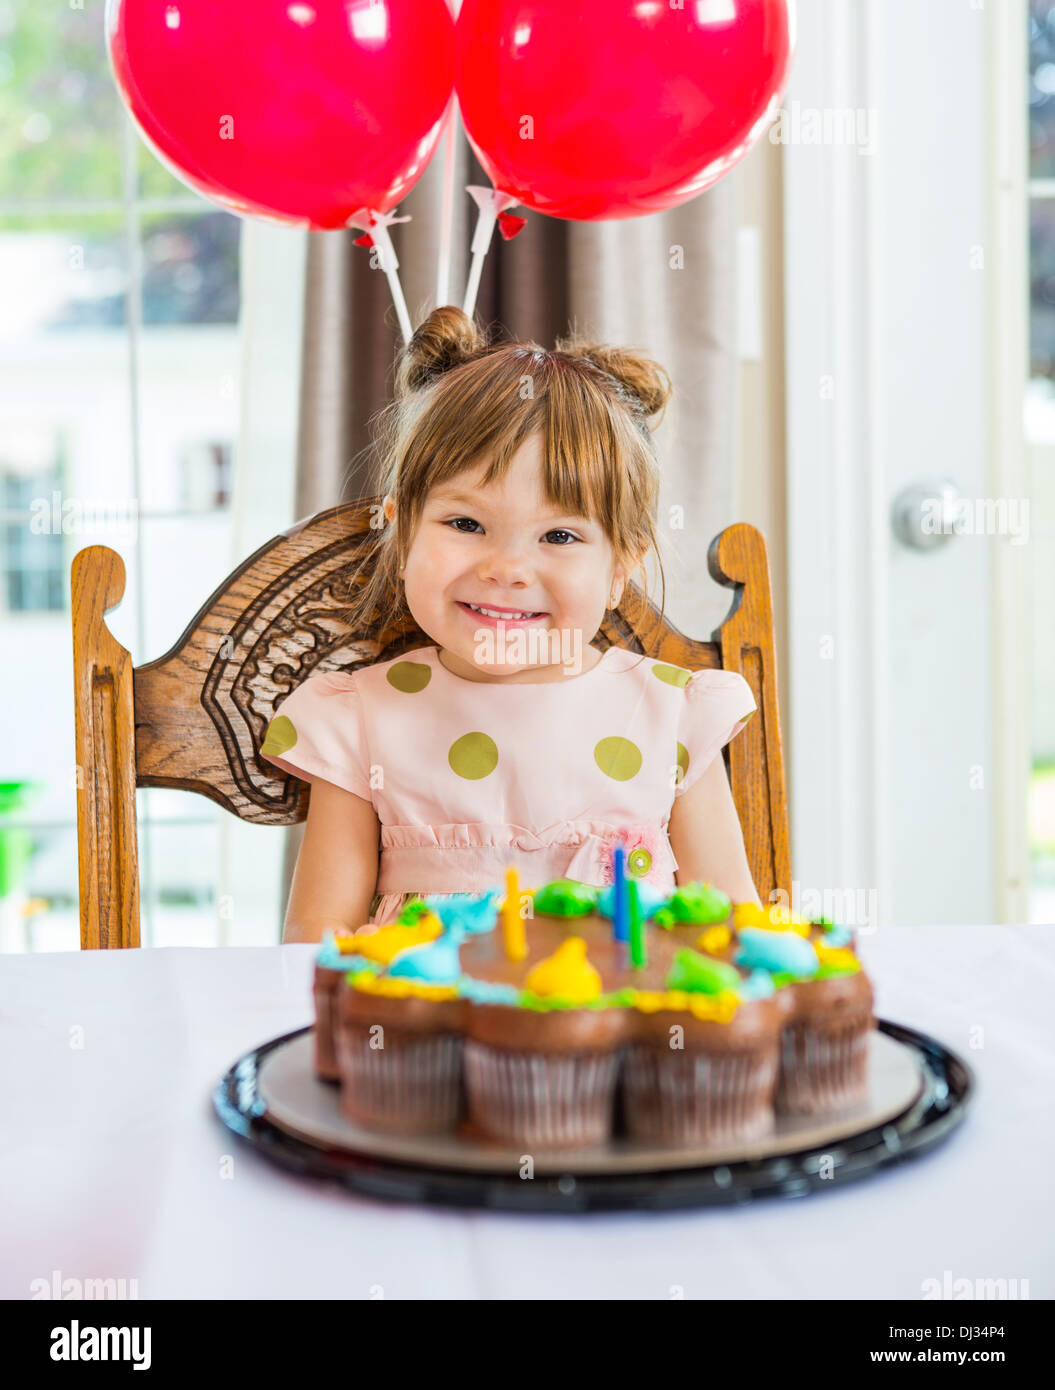 Happy Girl Sitting In Front Of Cake At Home - Stock Image